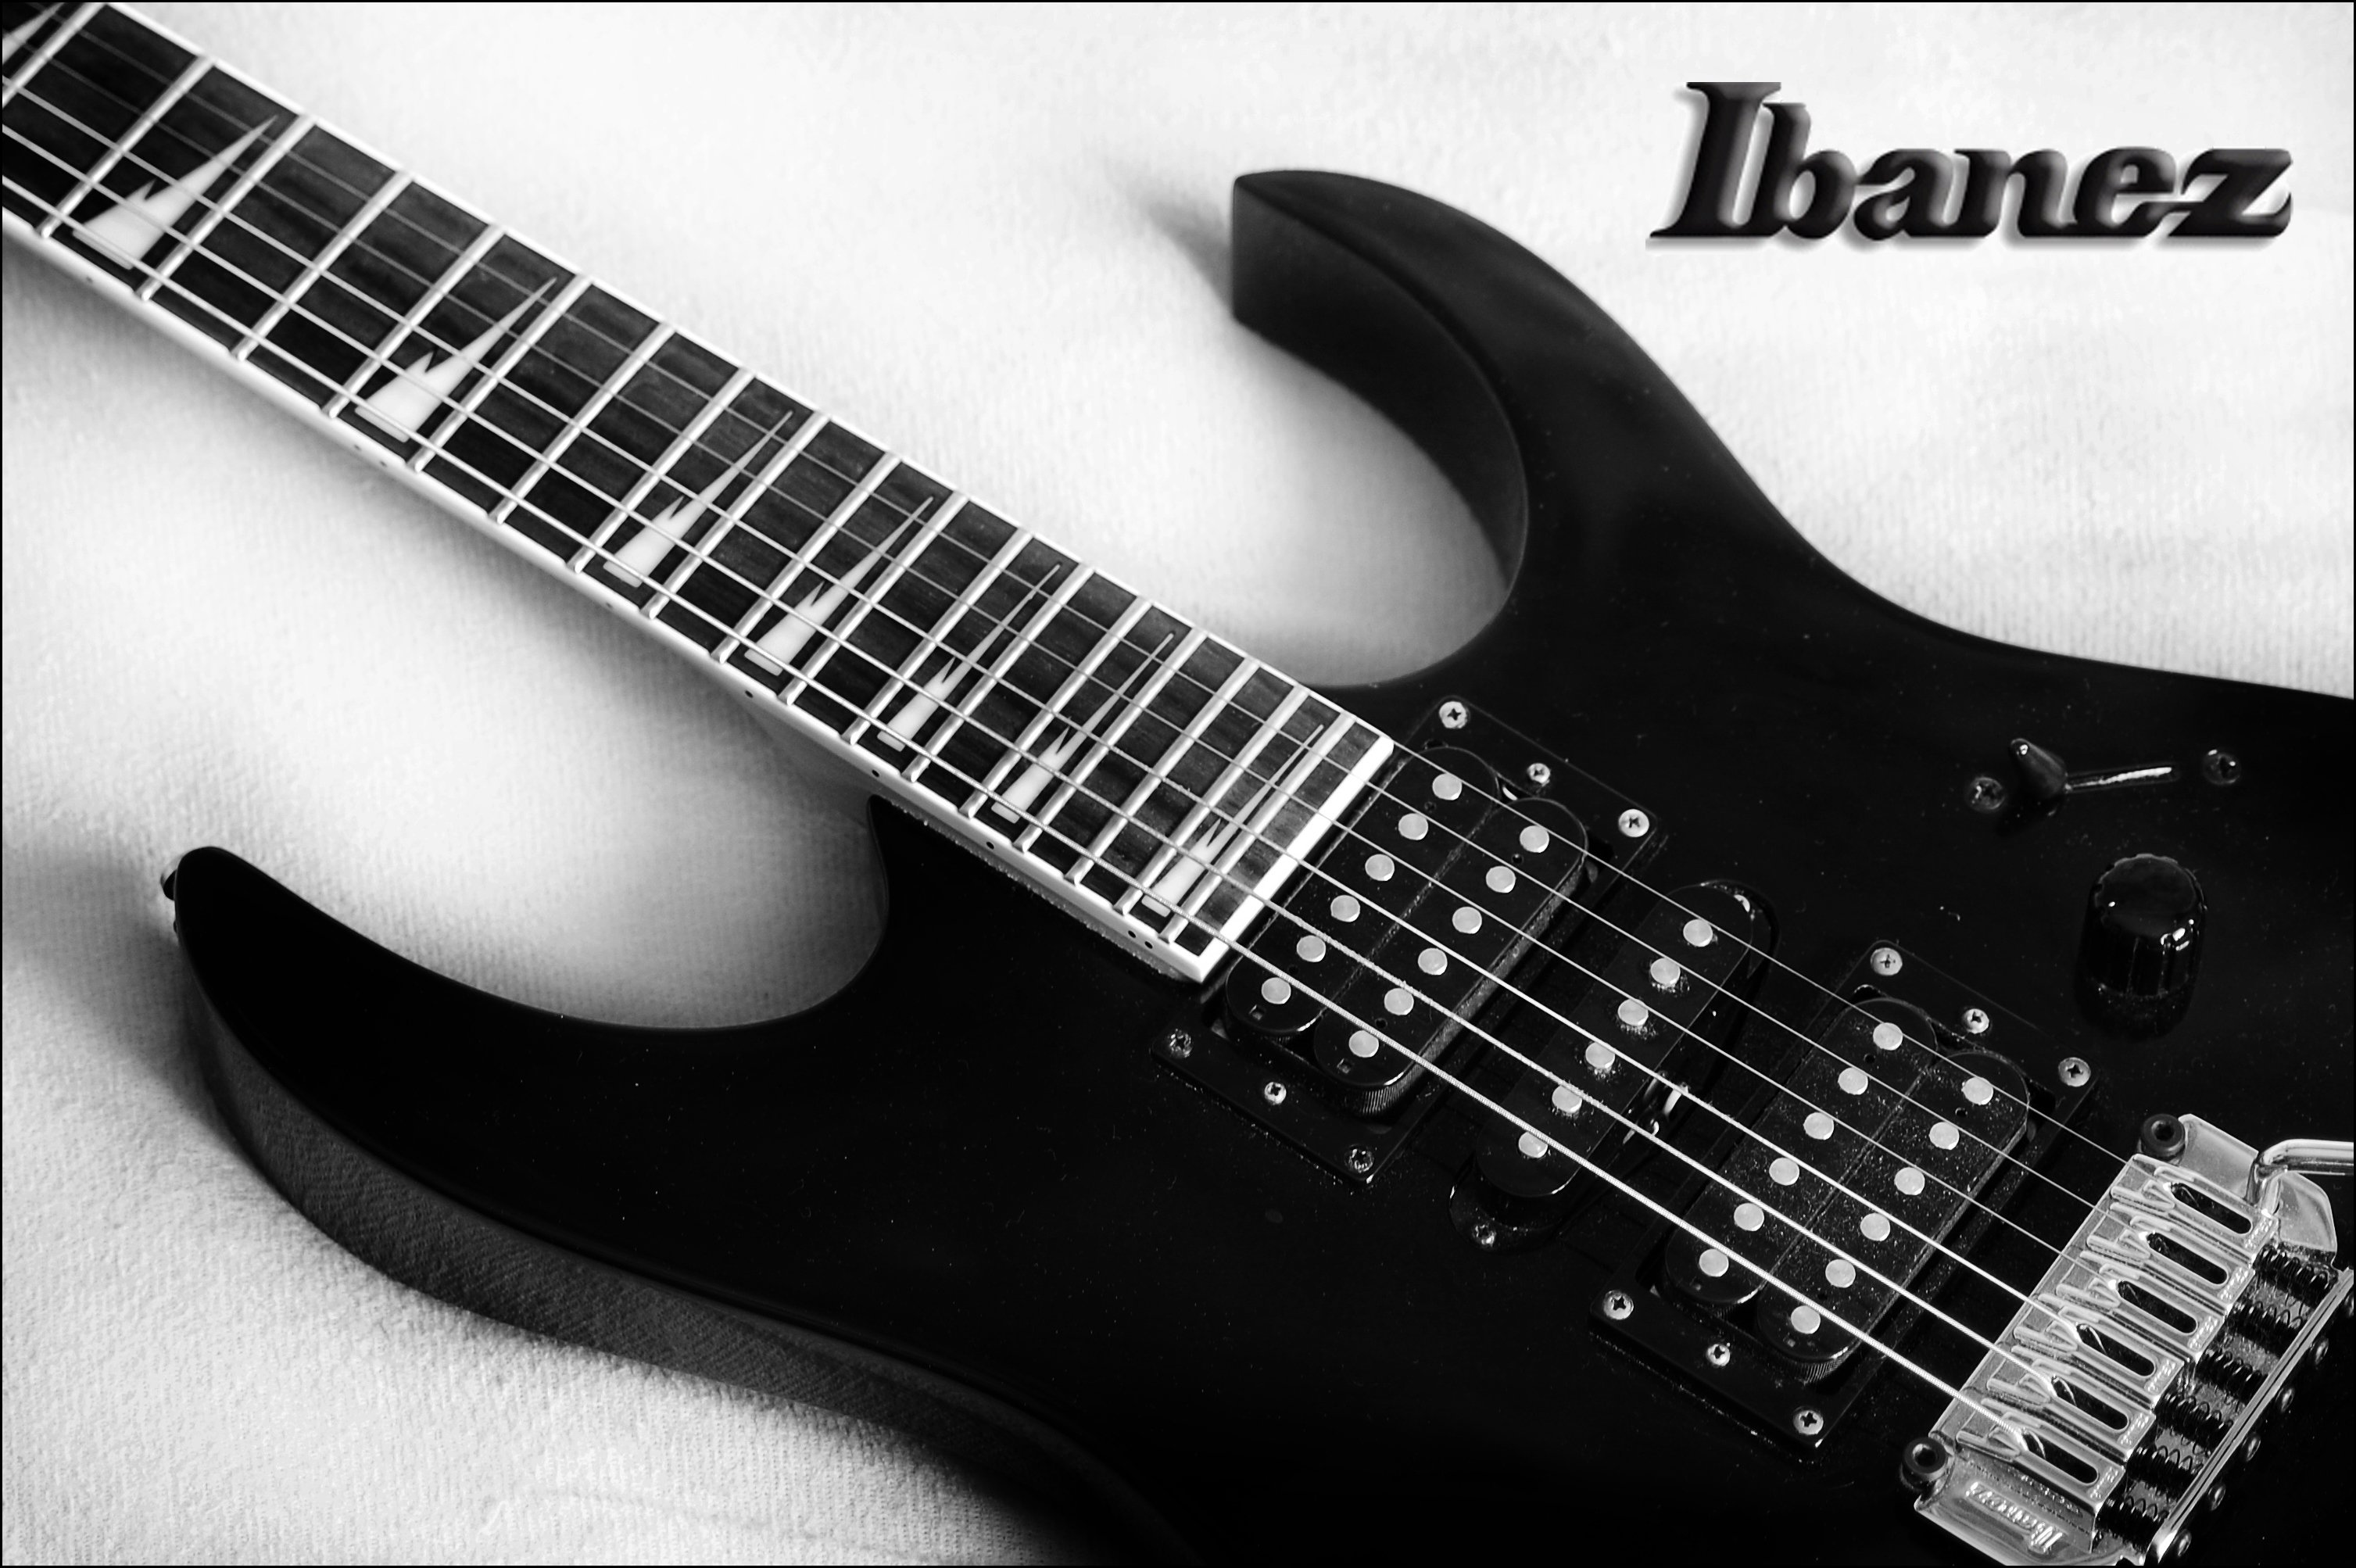 Ibanez Guitar Wallpaper - WallpaperSafari